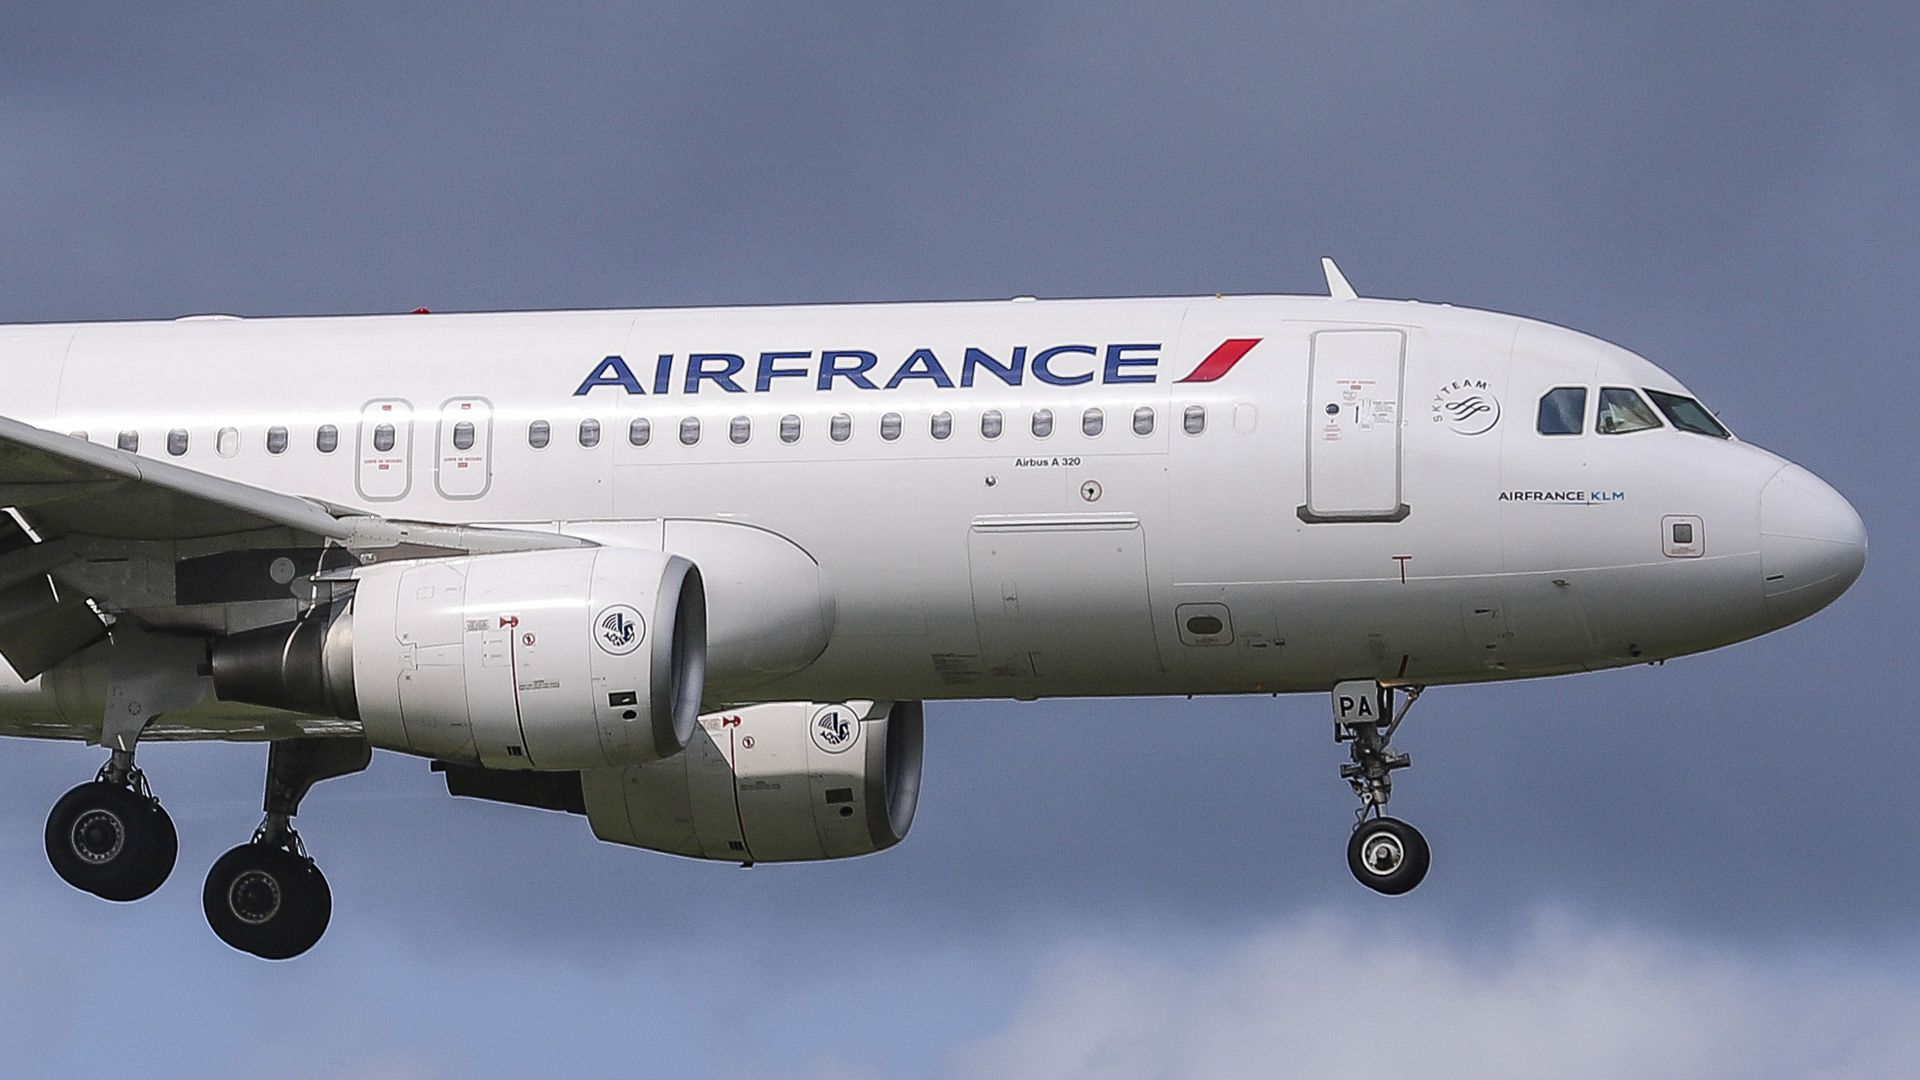 an AirFrance plane mid-flight